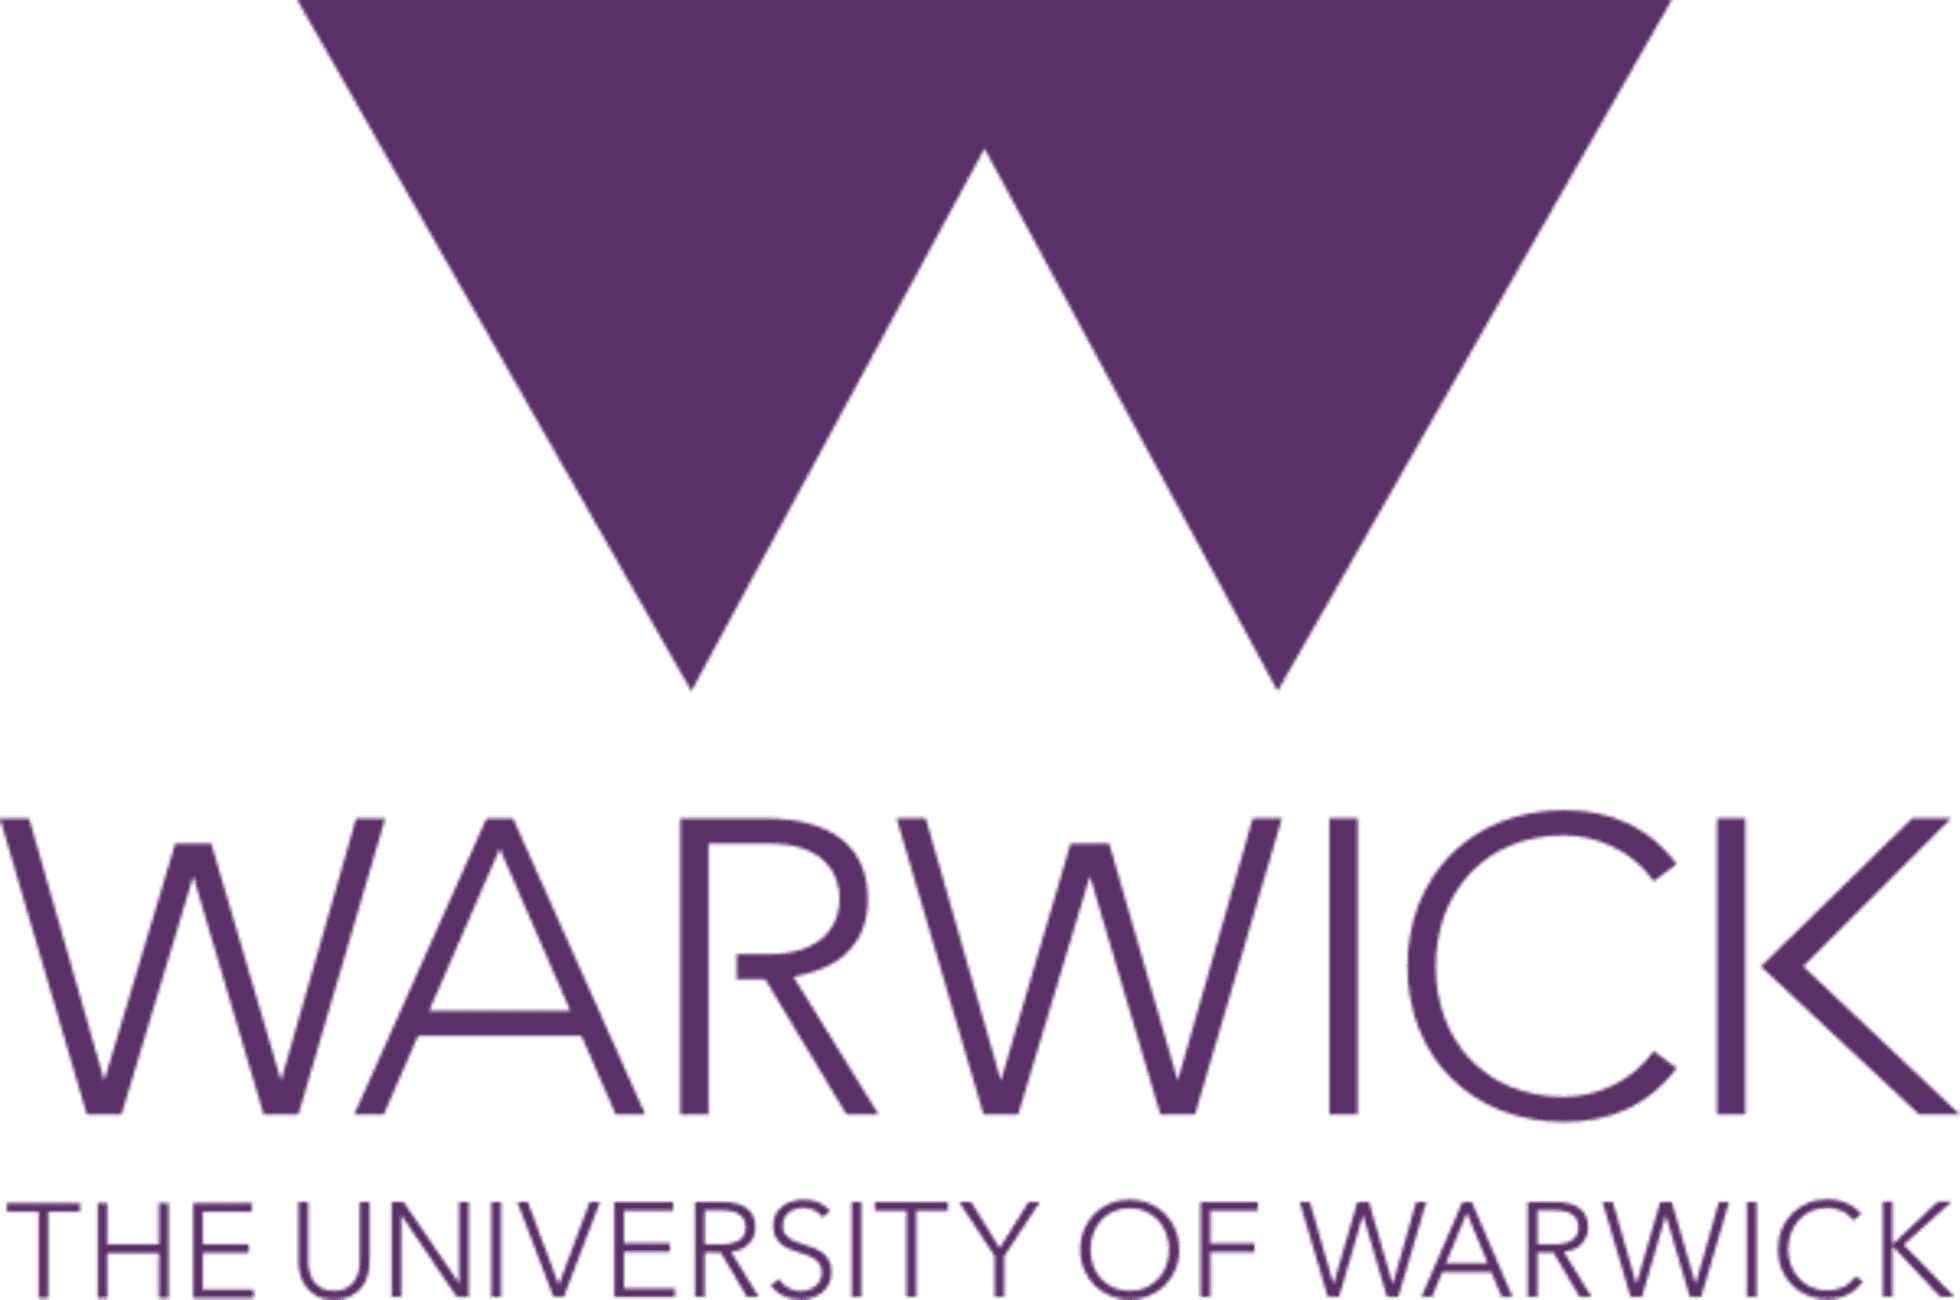 University of warwick logo detail